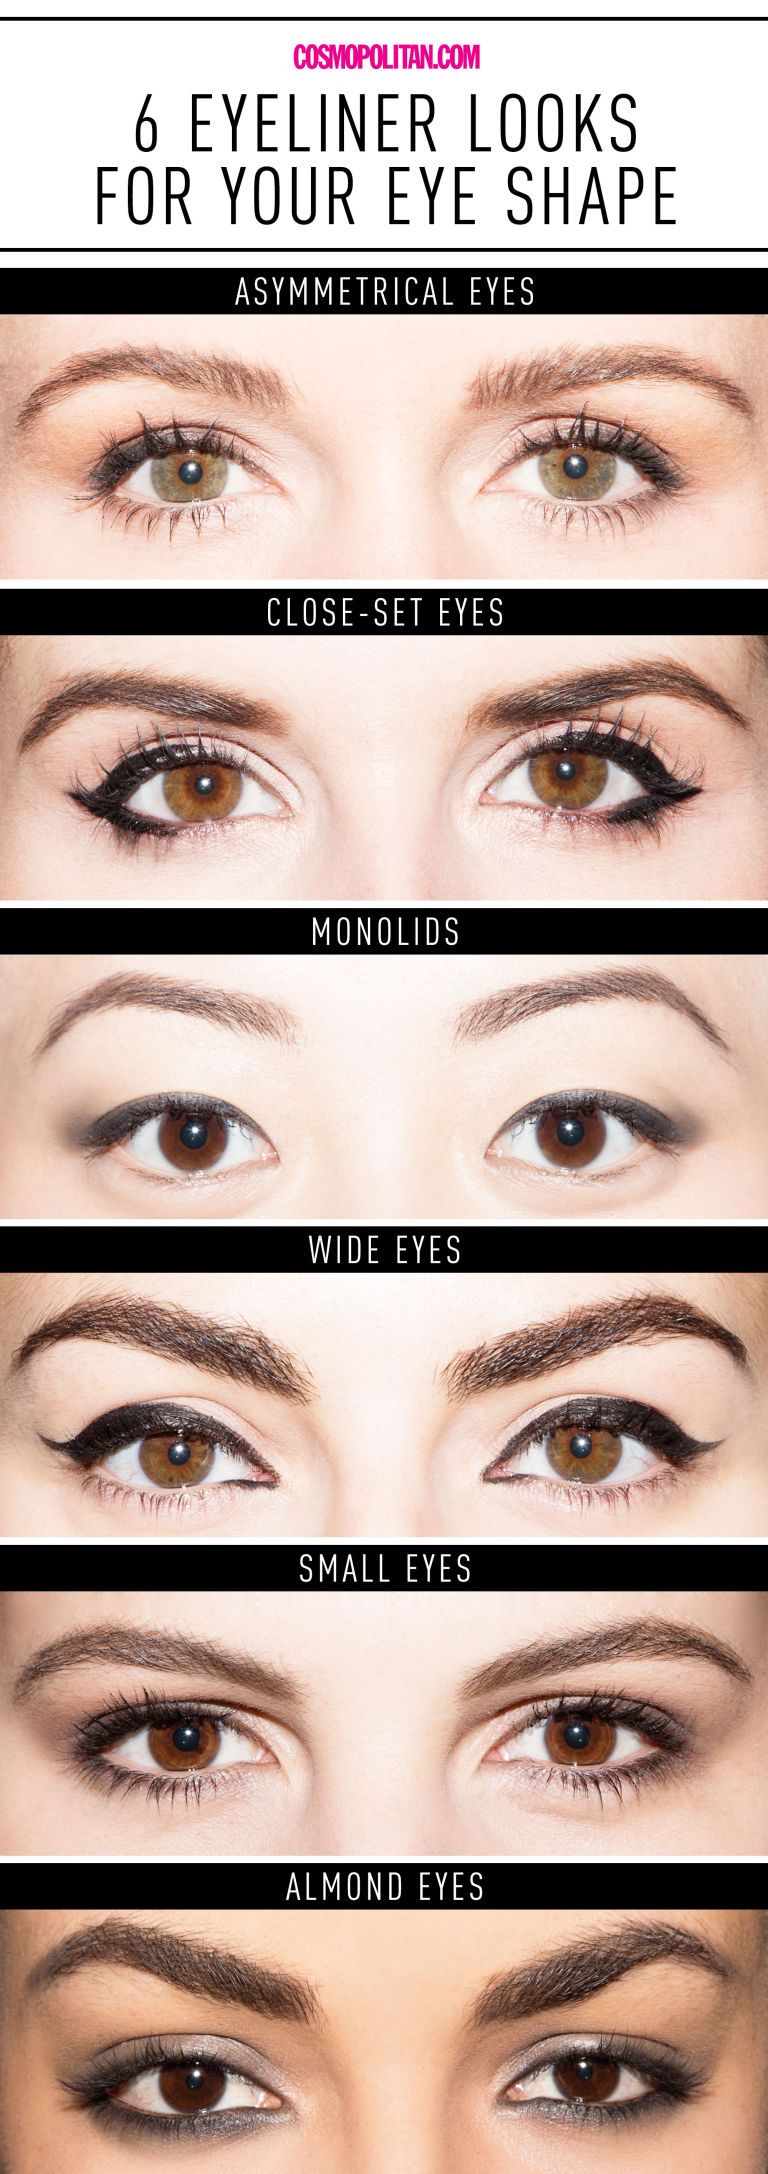 Makeup tips for your eye shape